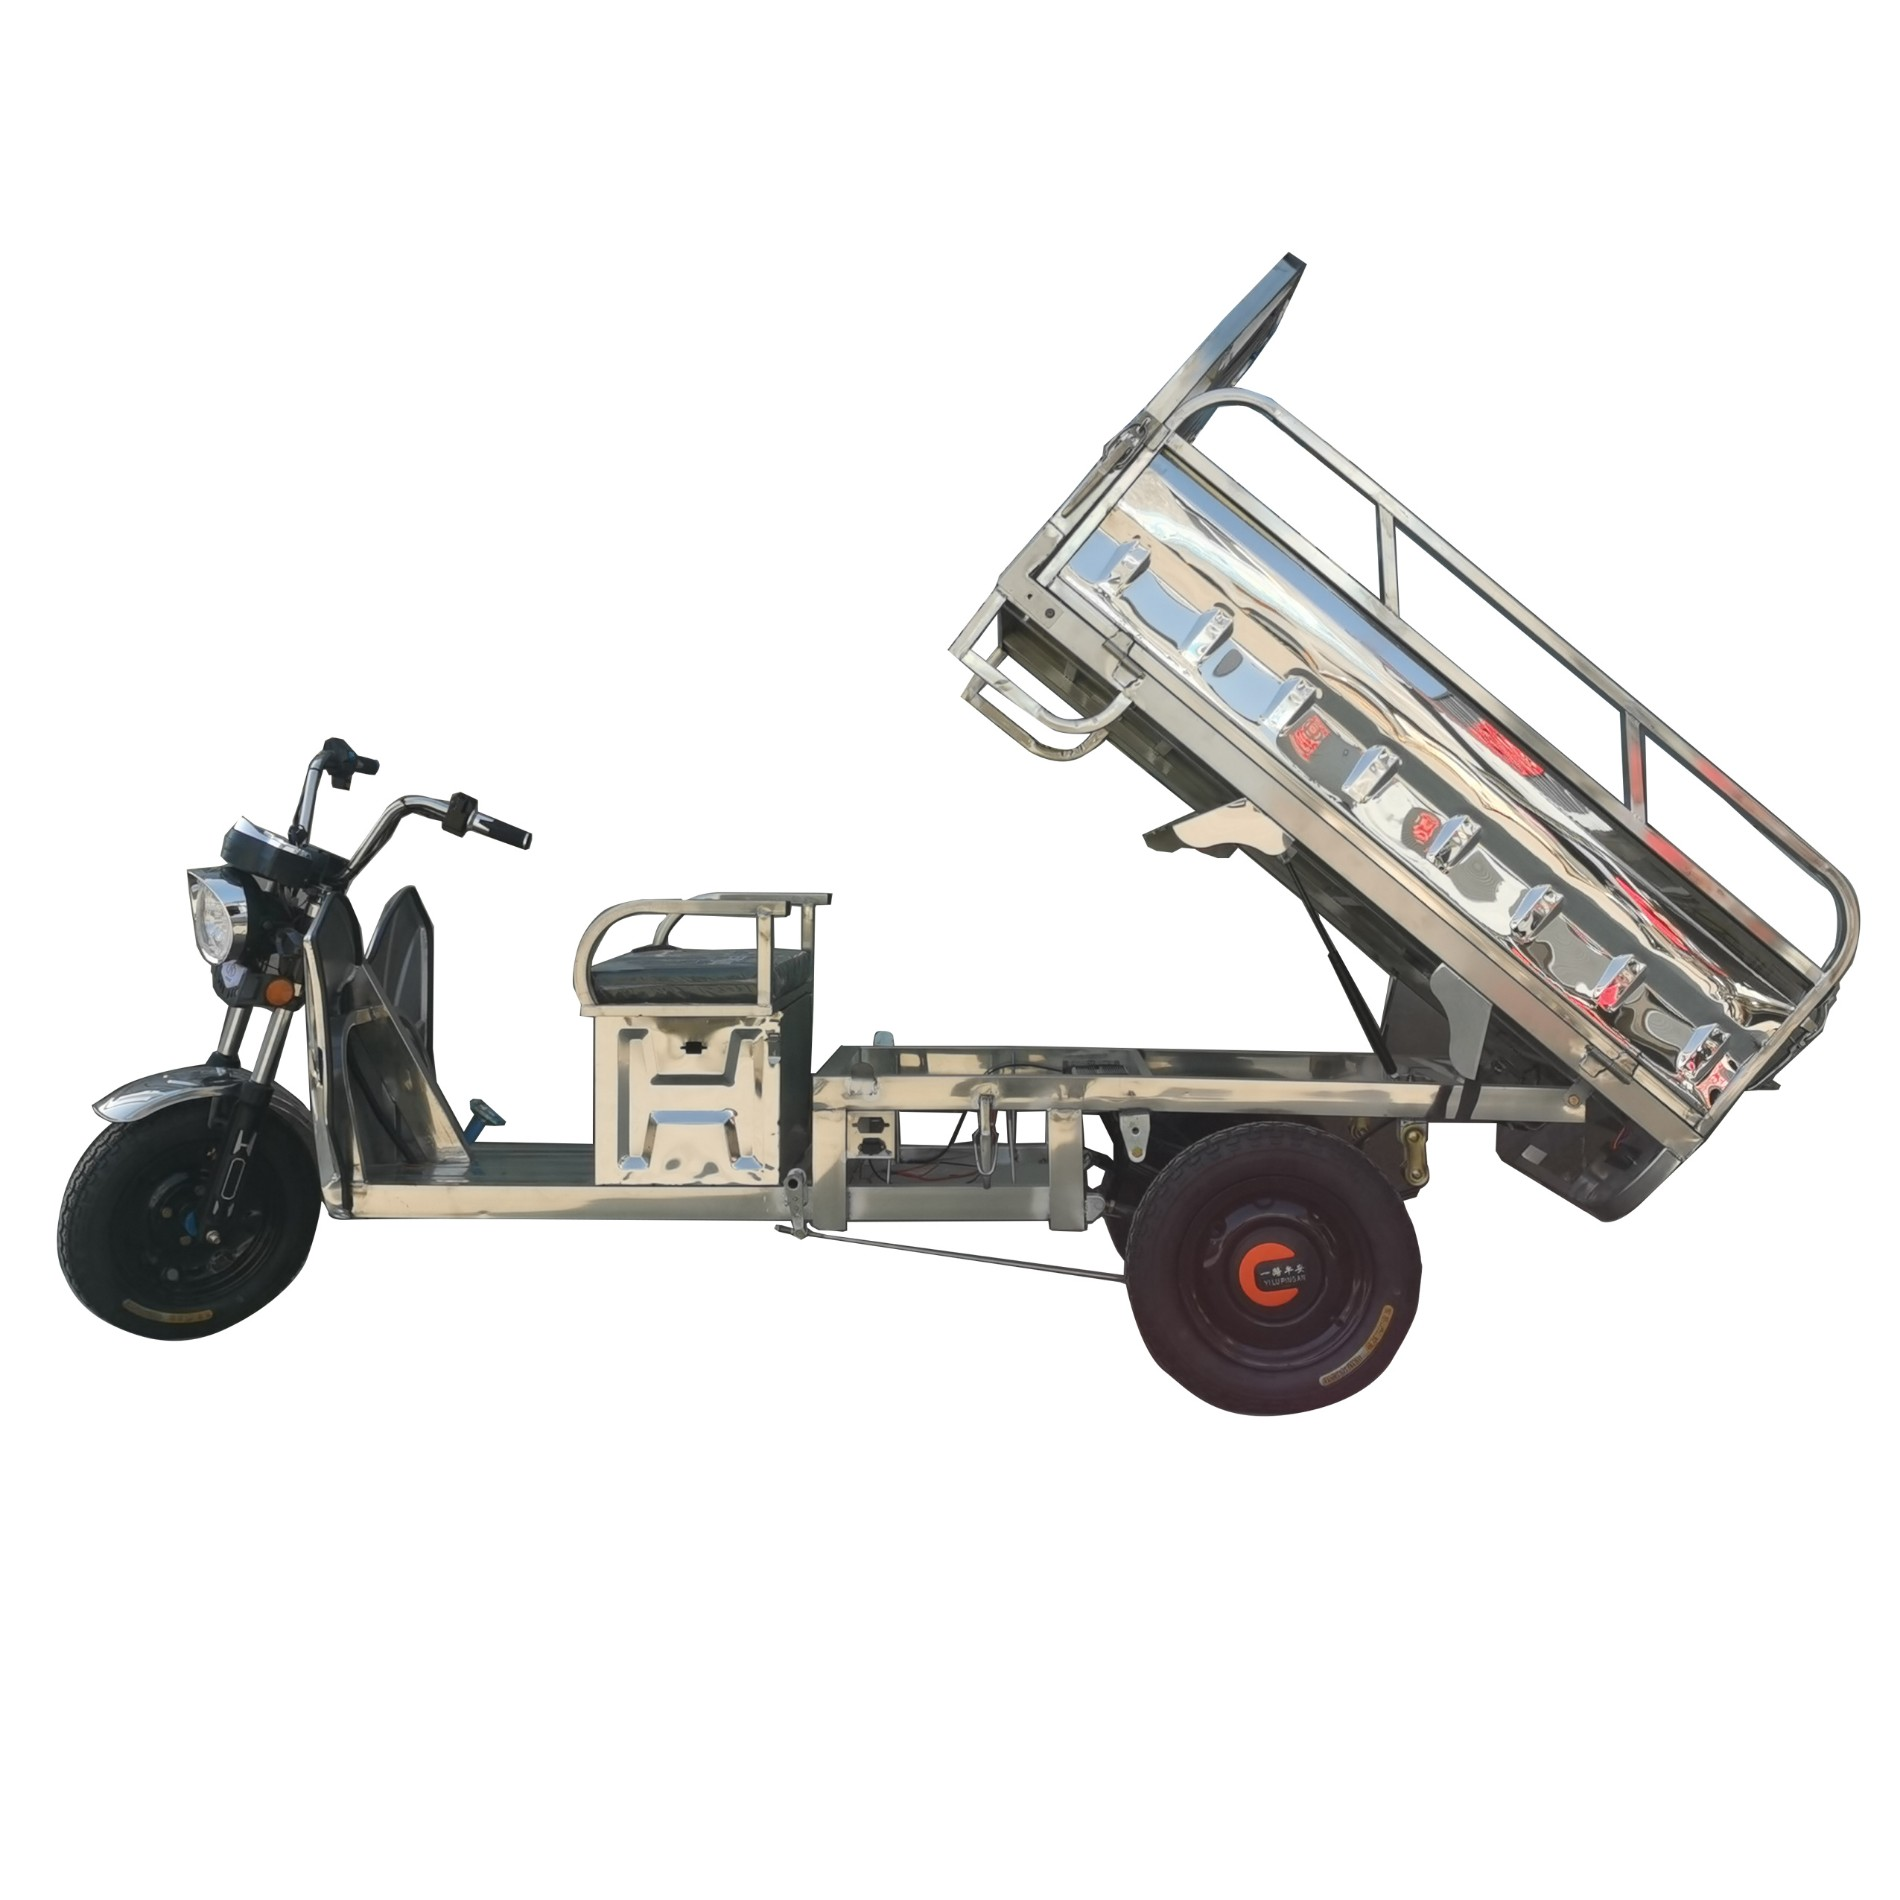 Intelligently Designed, Affordable electric cargo trike with Solar Panel board Manufacturers, Intelligently Designed, Affordable electric cargo trike with Solar Panel board Factory, Supply Intelligently Designed, Affordable electric cargo trike with Solar Panel board